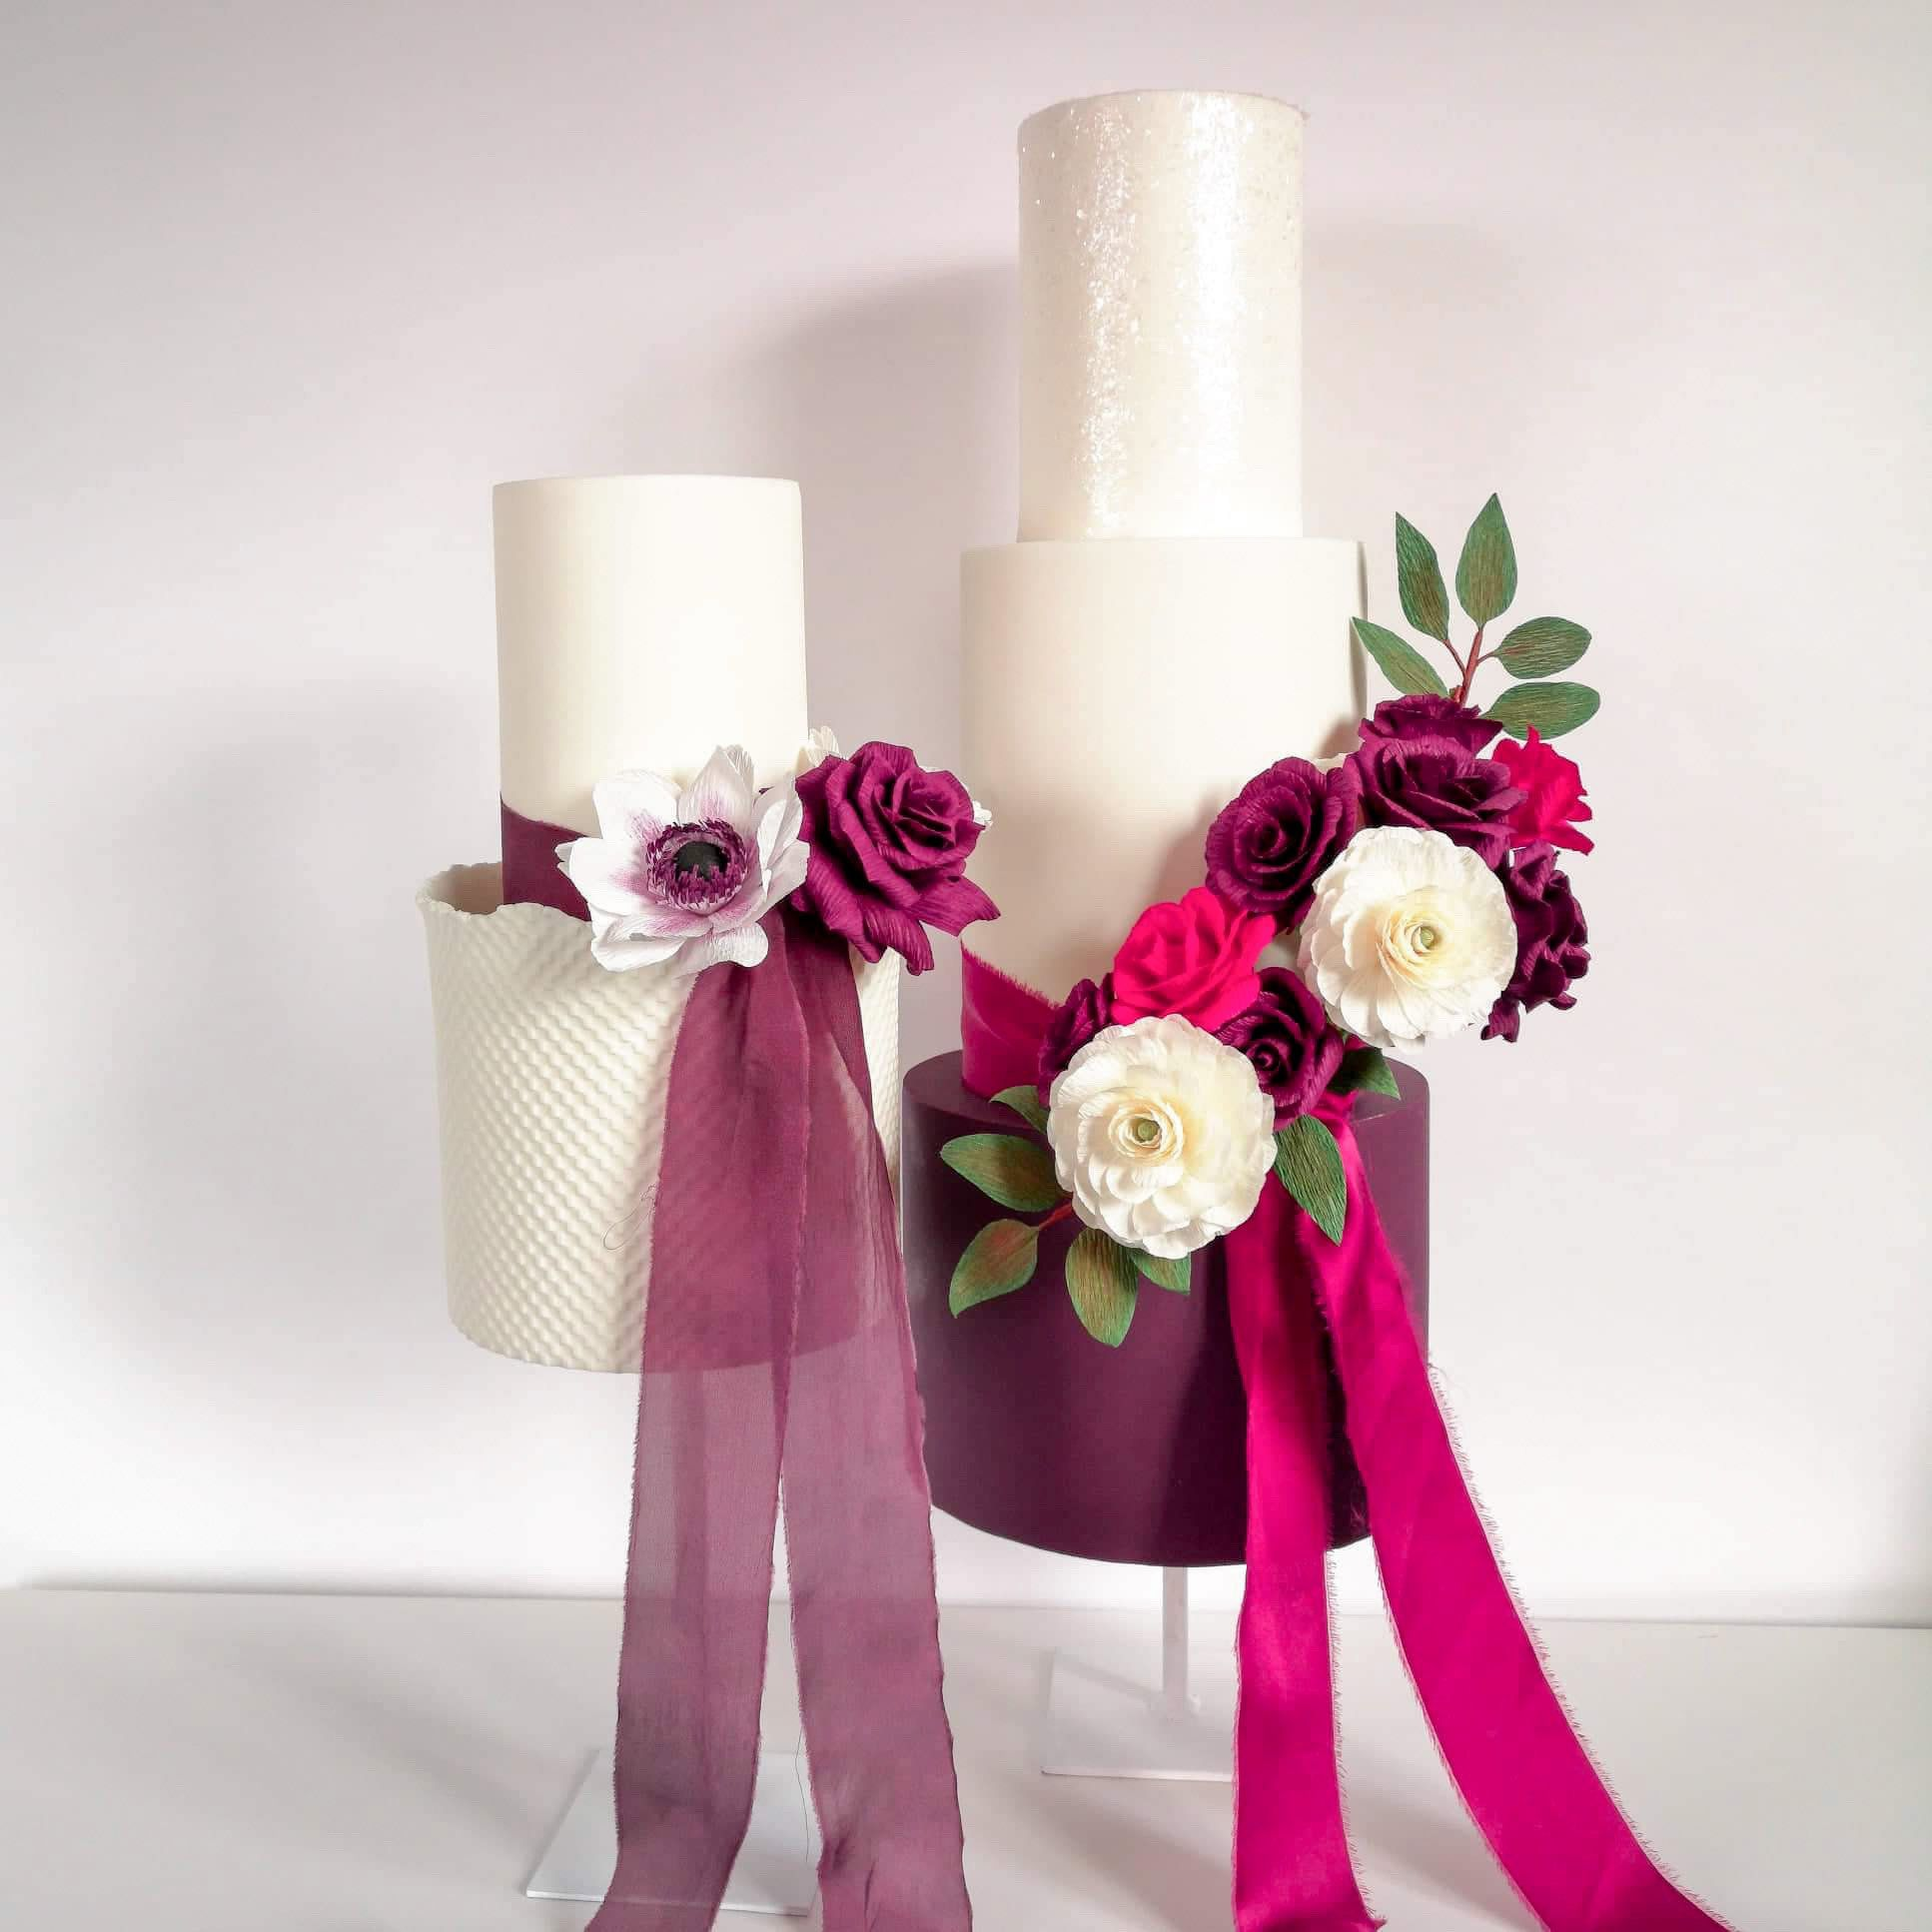 Cake support to raise your cake height or to use as a